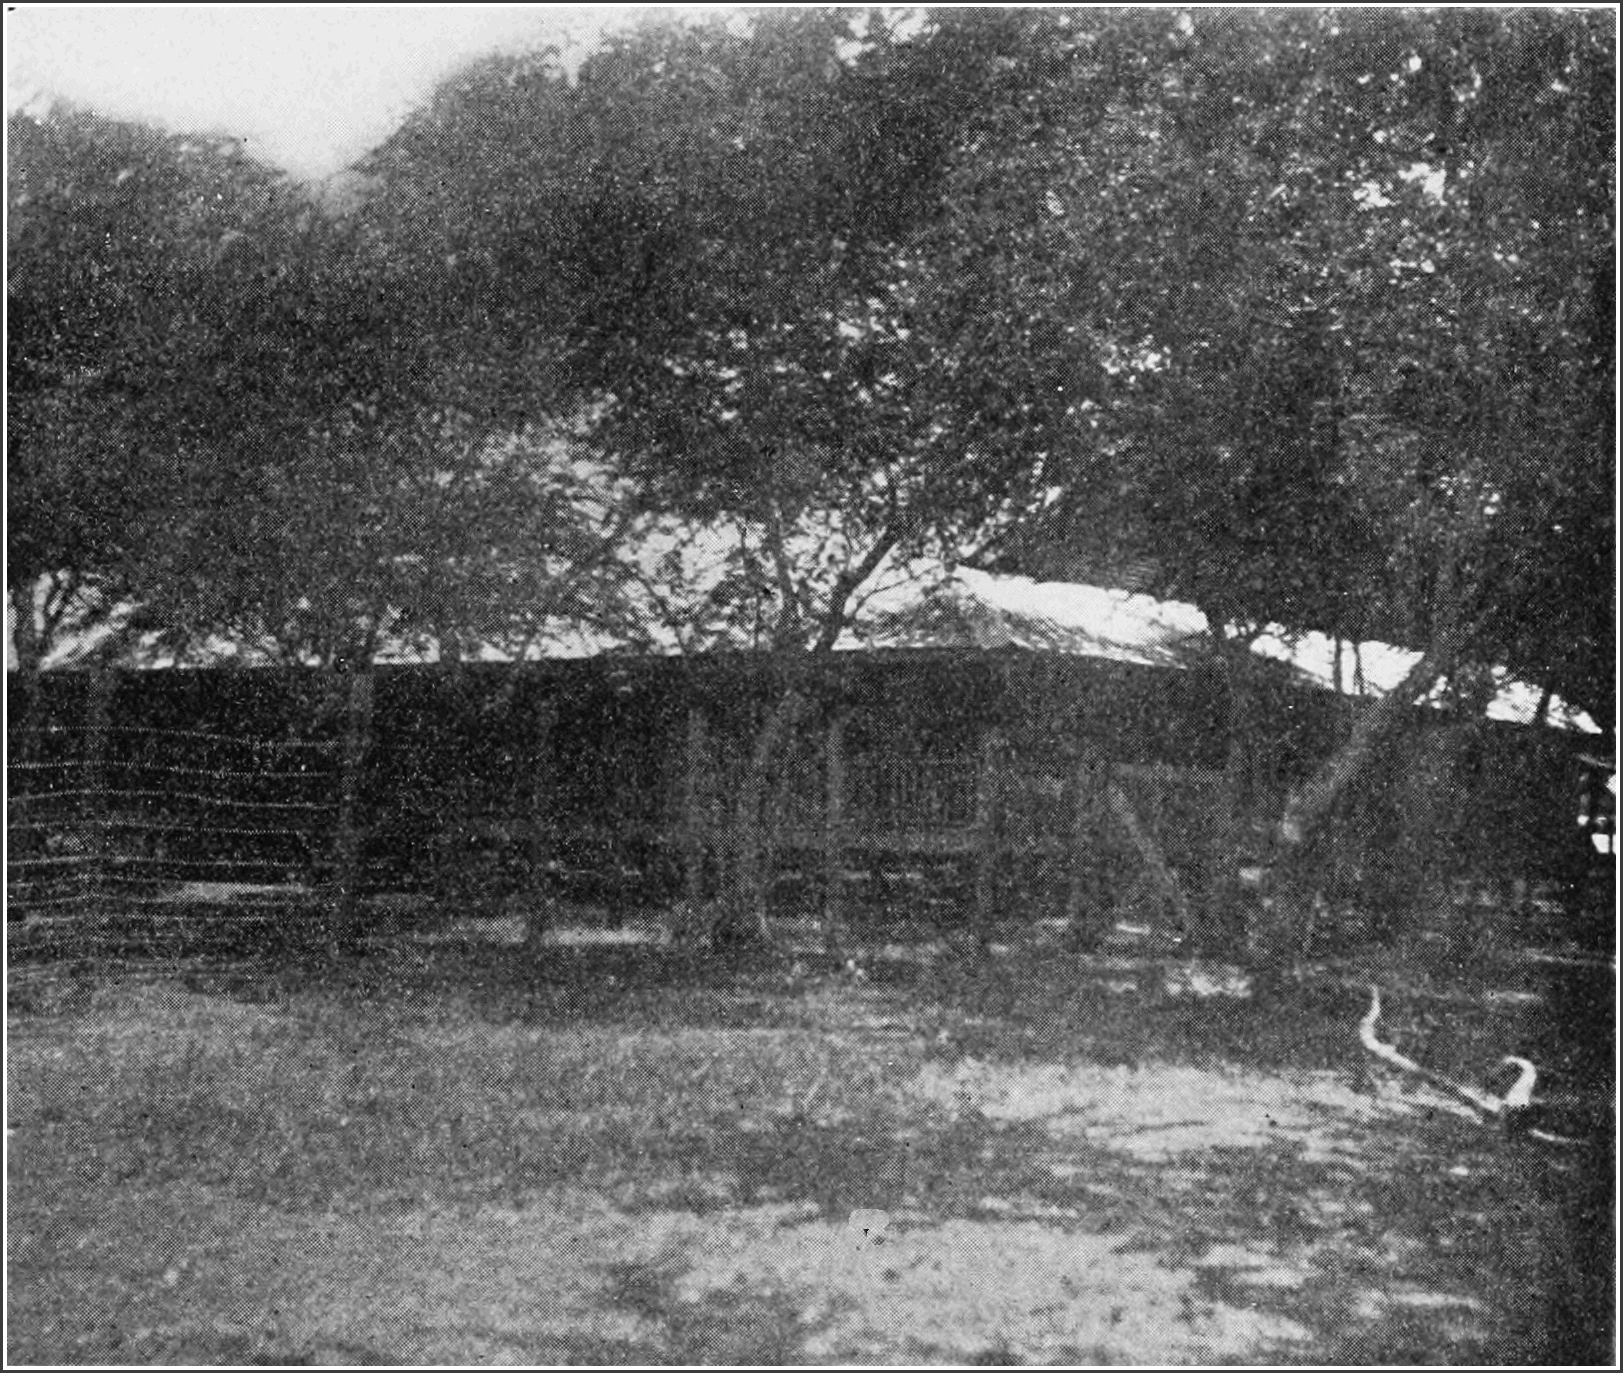 PSM V82 D375 Isolation hospital at the cebu quarantine in the philippines.png